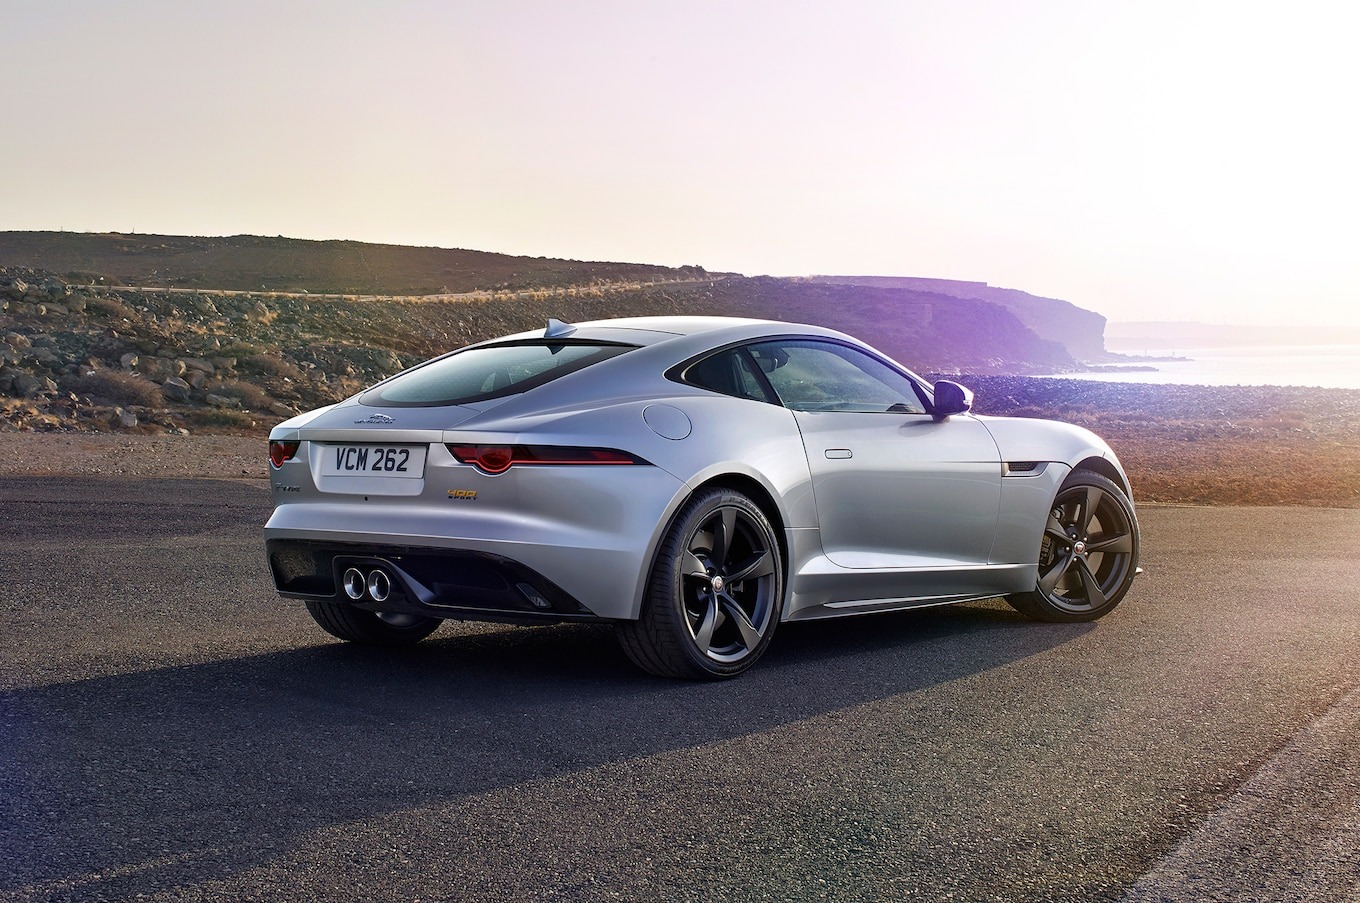 2018-jaguar-f-type-rear-three-quarter